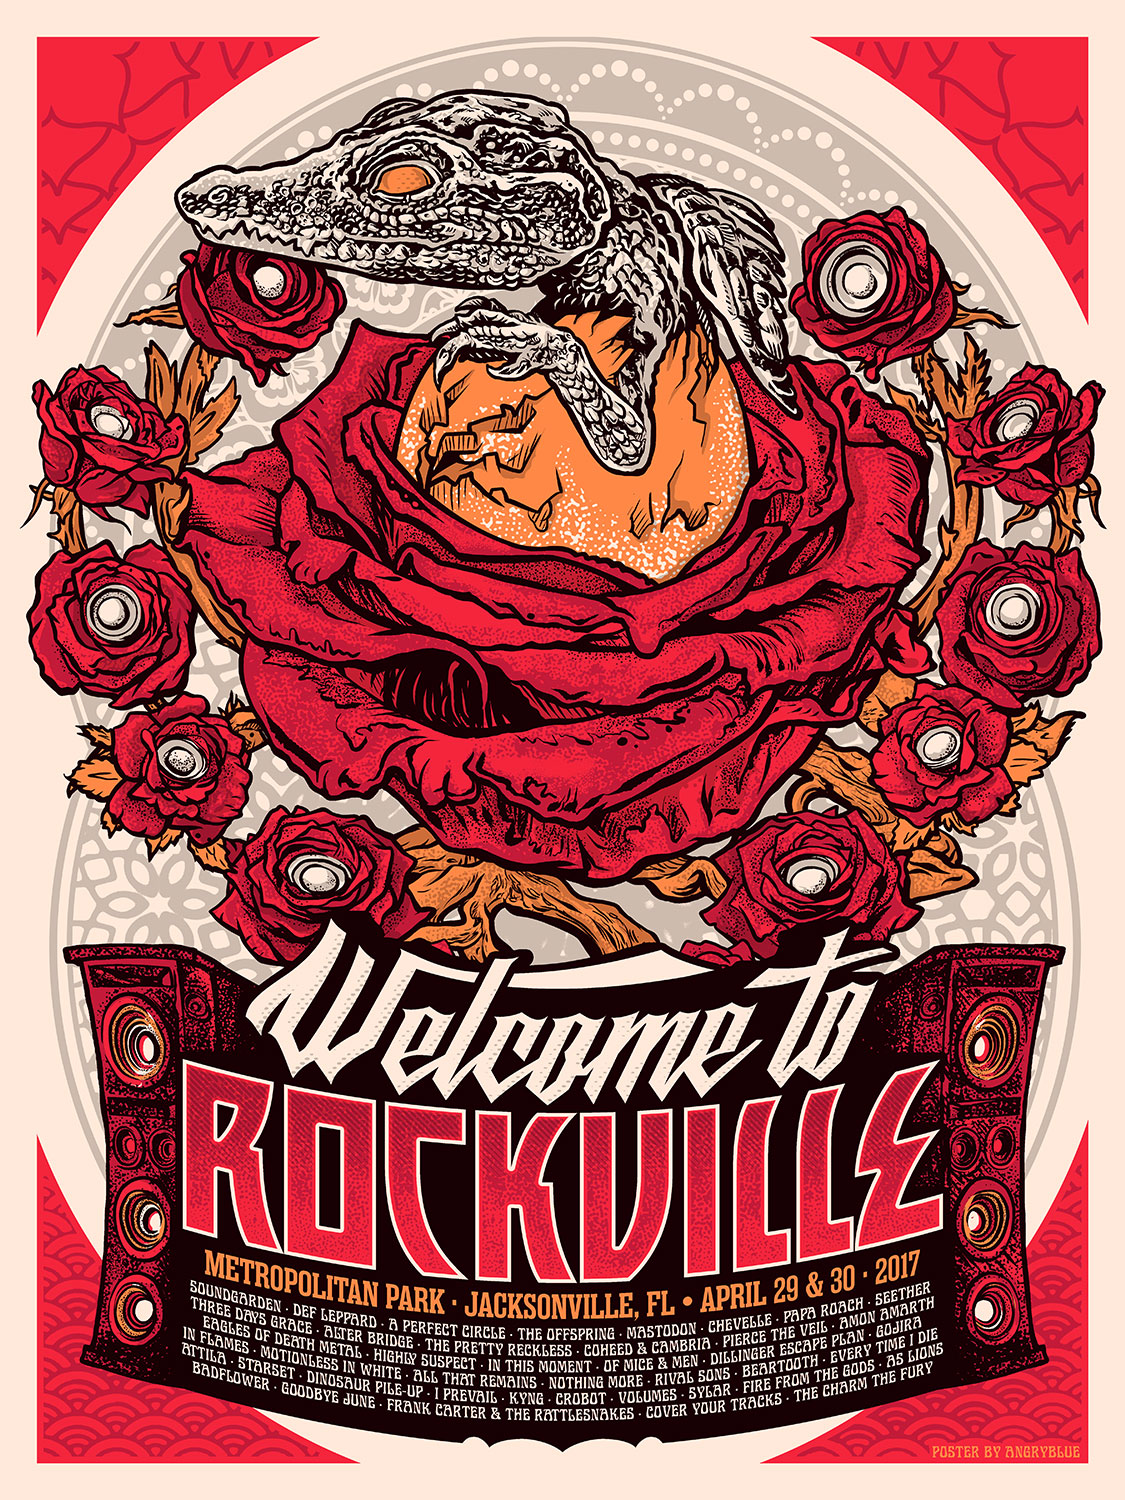 Welcome_to_Rockville_2017_by_Angryblue.jpg